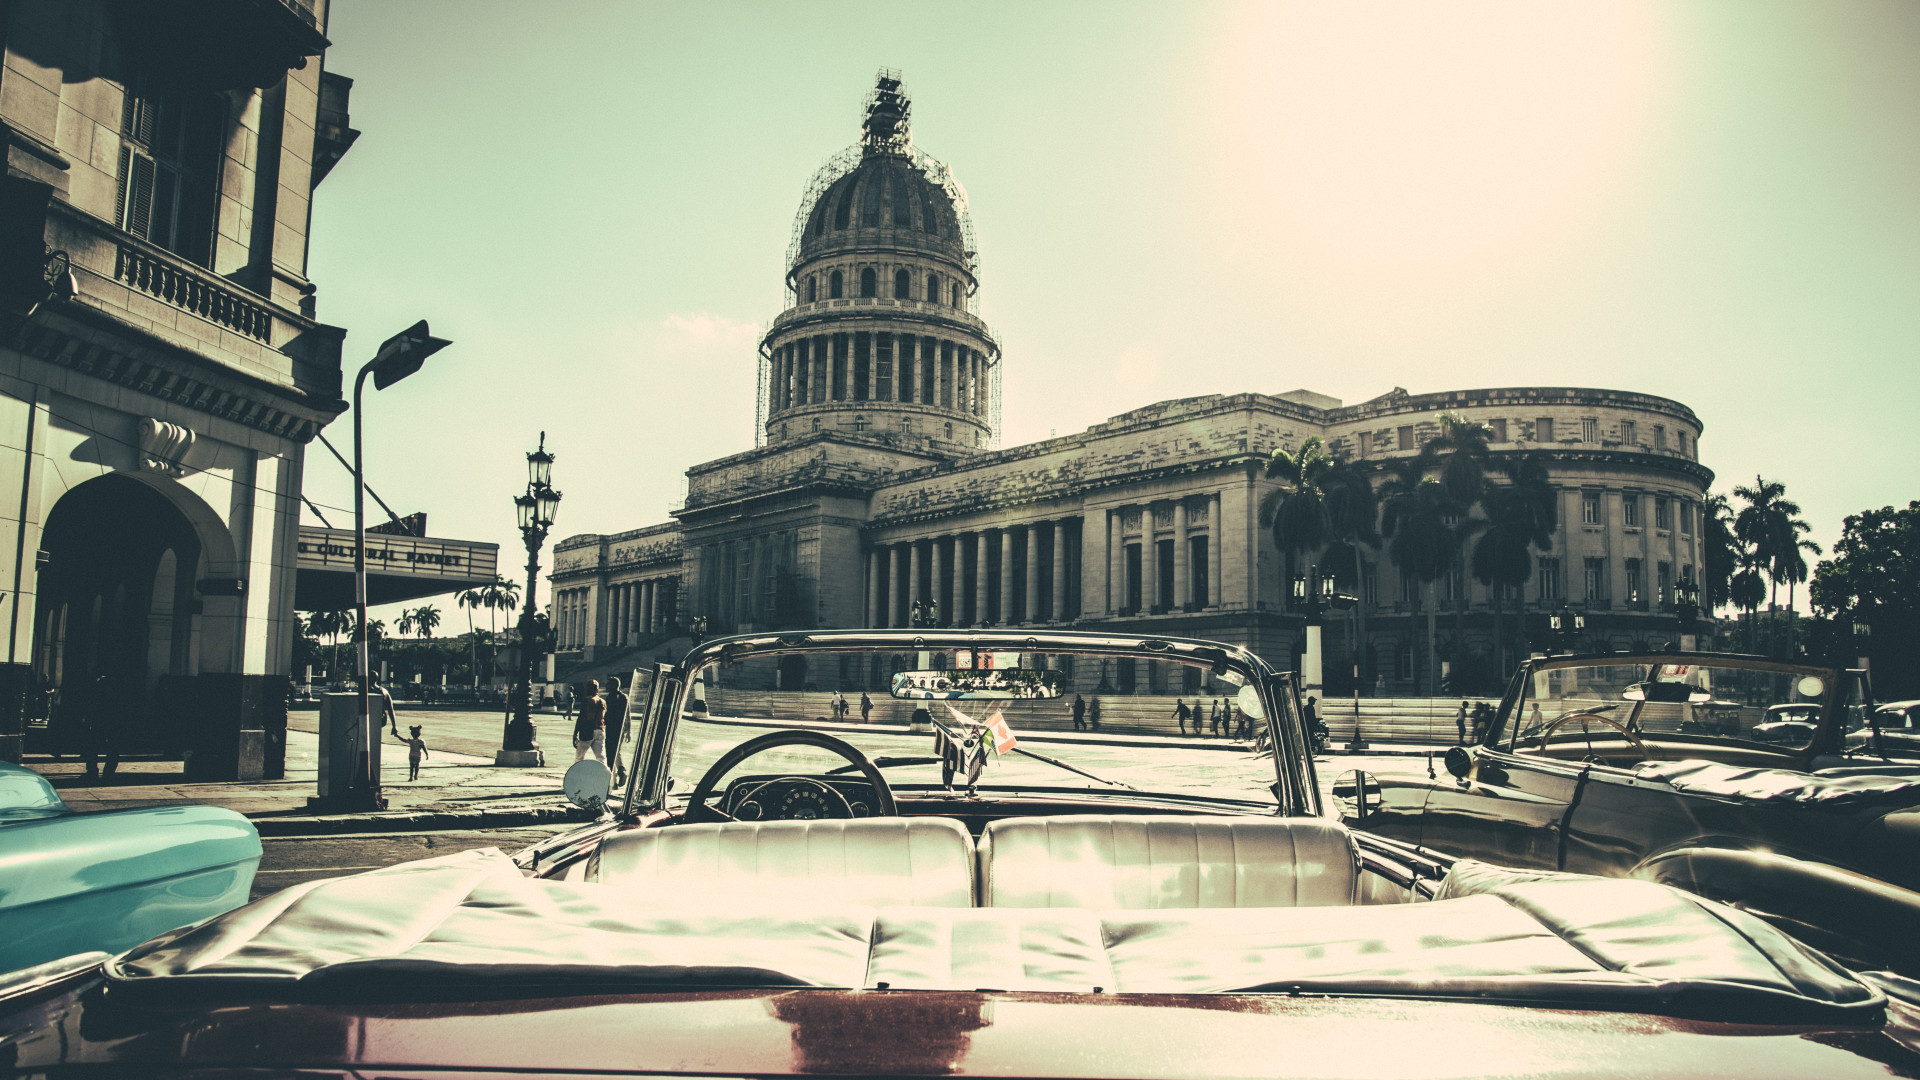 Havana City, Cuba | 1920x1080 wallpaper